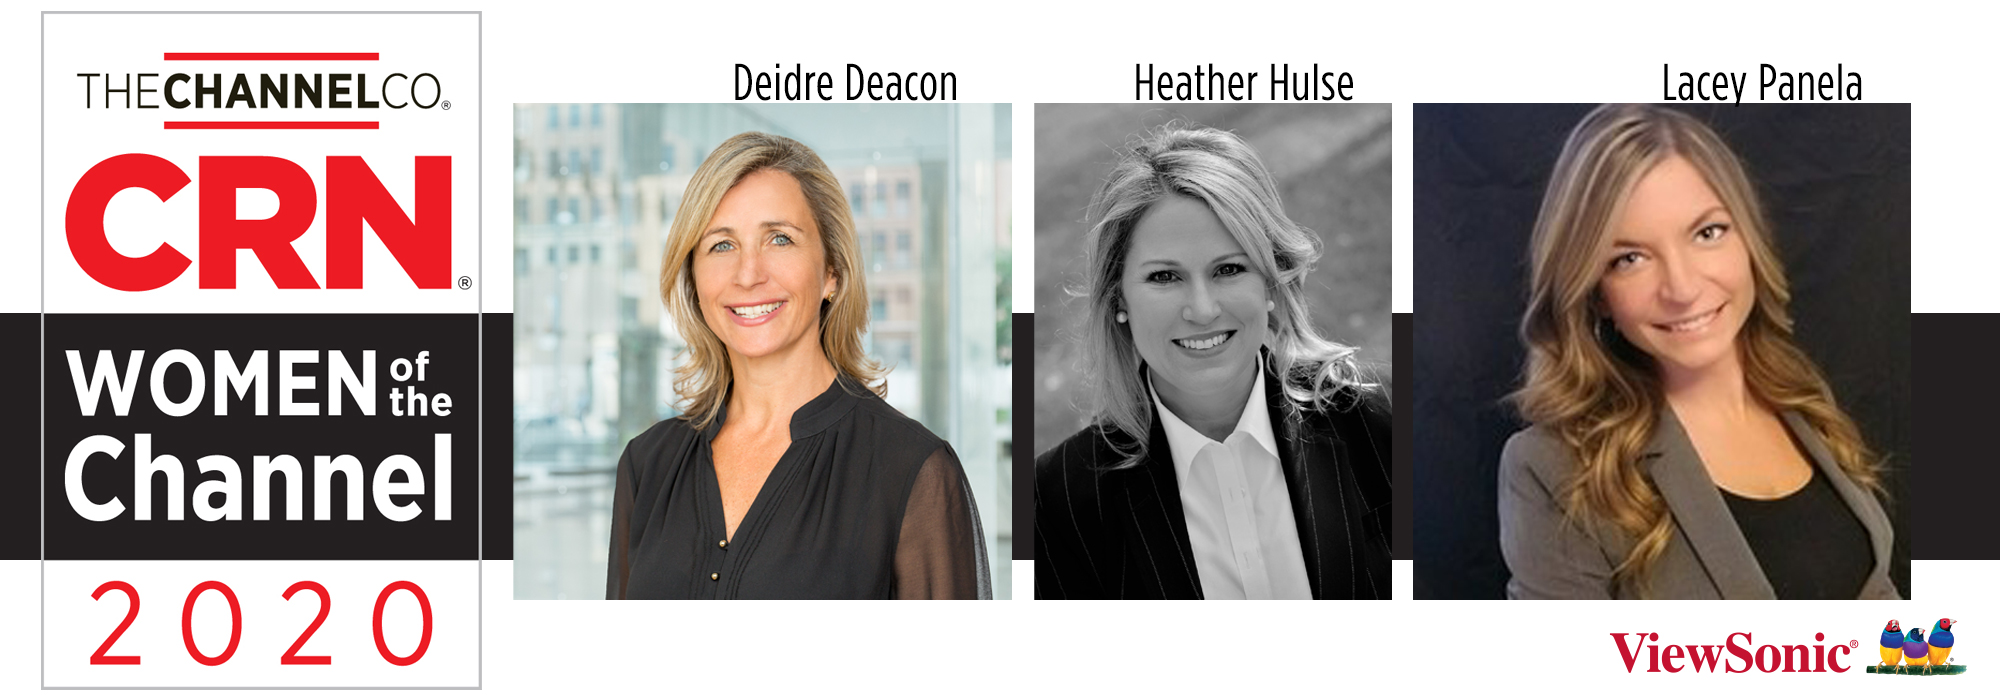 Deidre Deacon, Heather Hulse and Lacey Patnella of ViewSonic Recognized as Part of CRN's 2020 Women of the Channel